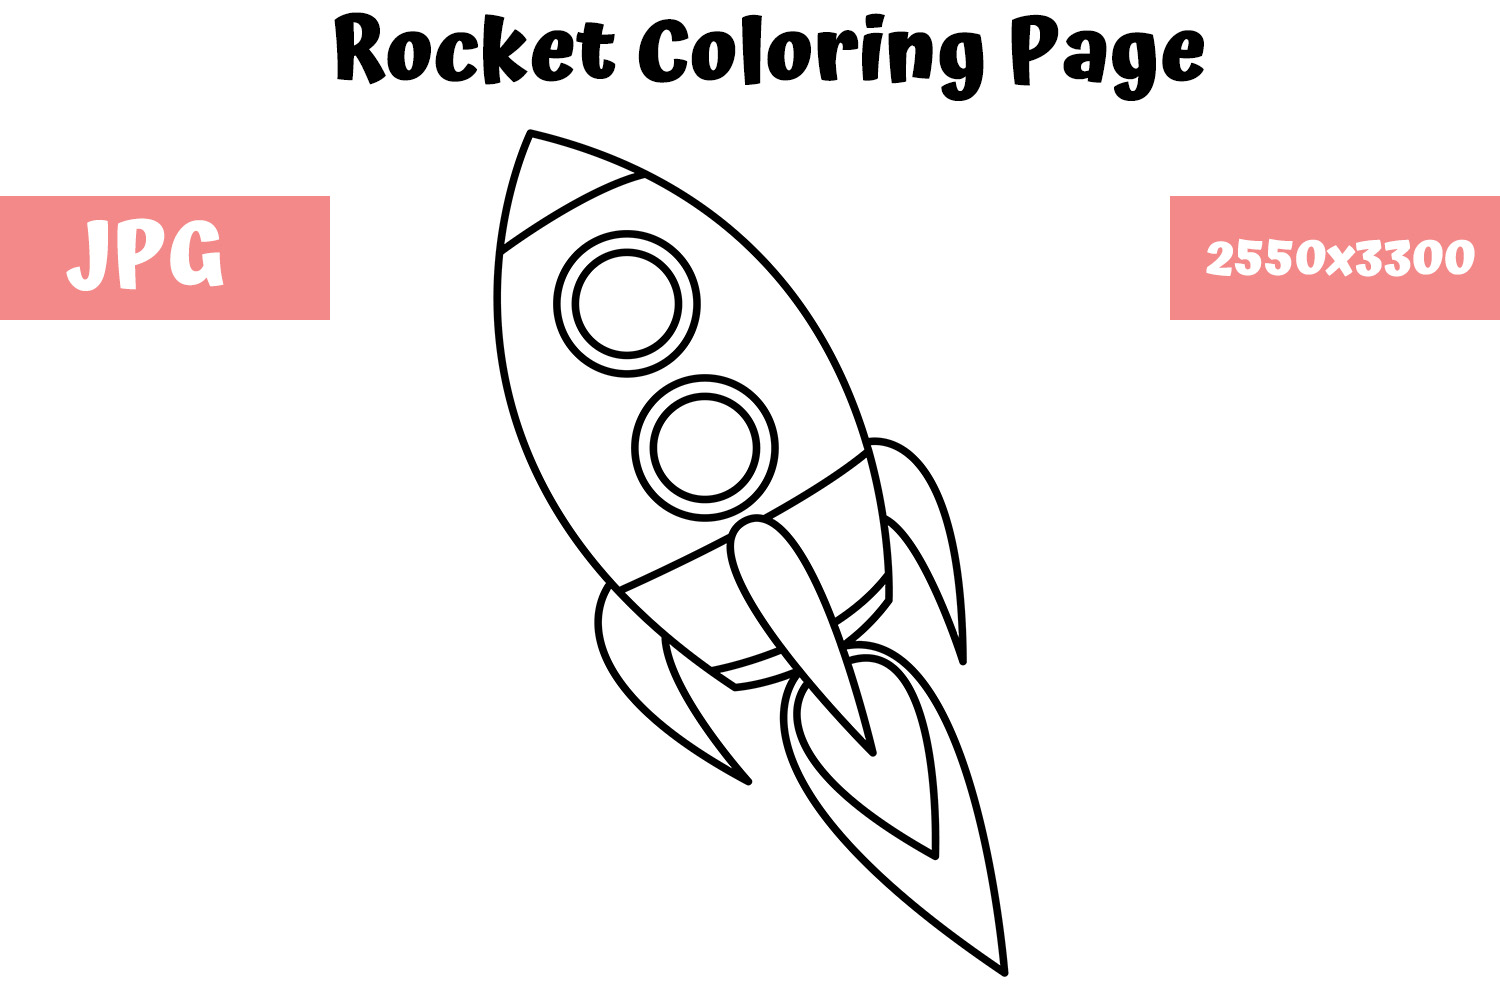 Download Free Rocket Coloring Page For Kids Graphic By Mybeautifulfiles for Cricut Explore, Silhouette and other cutting machines.